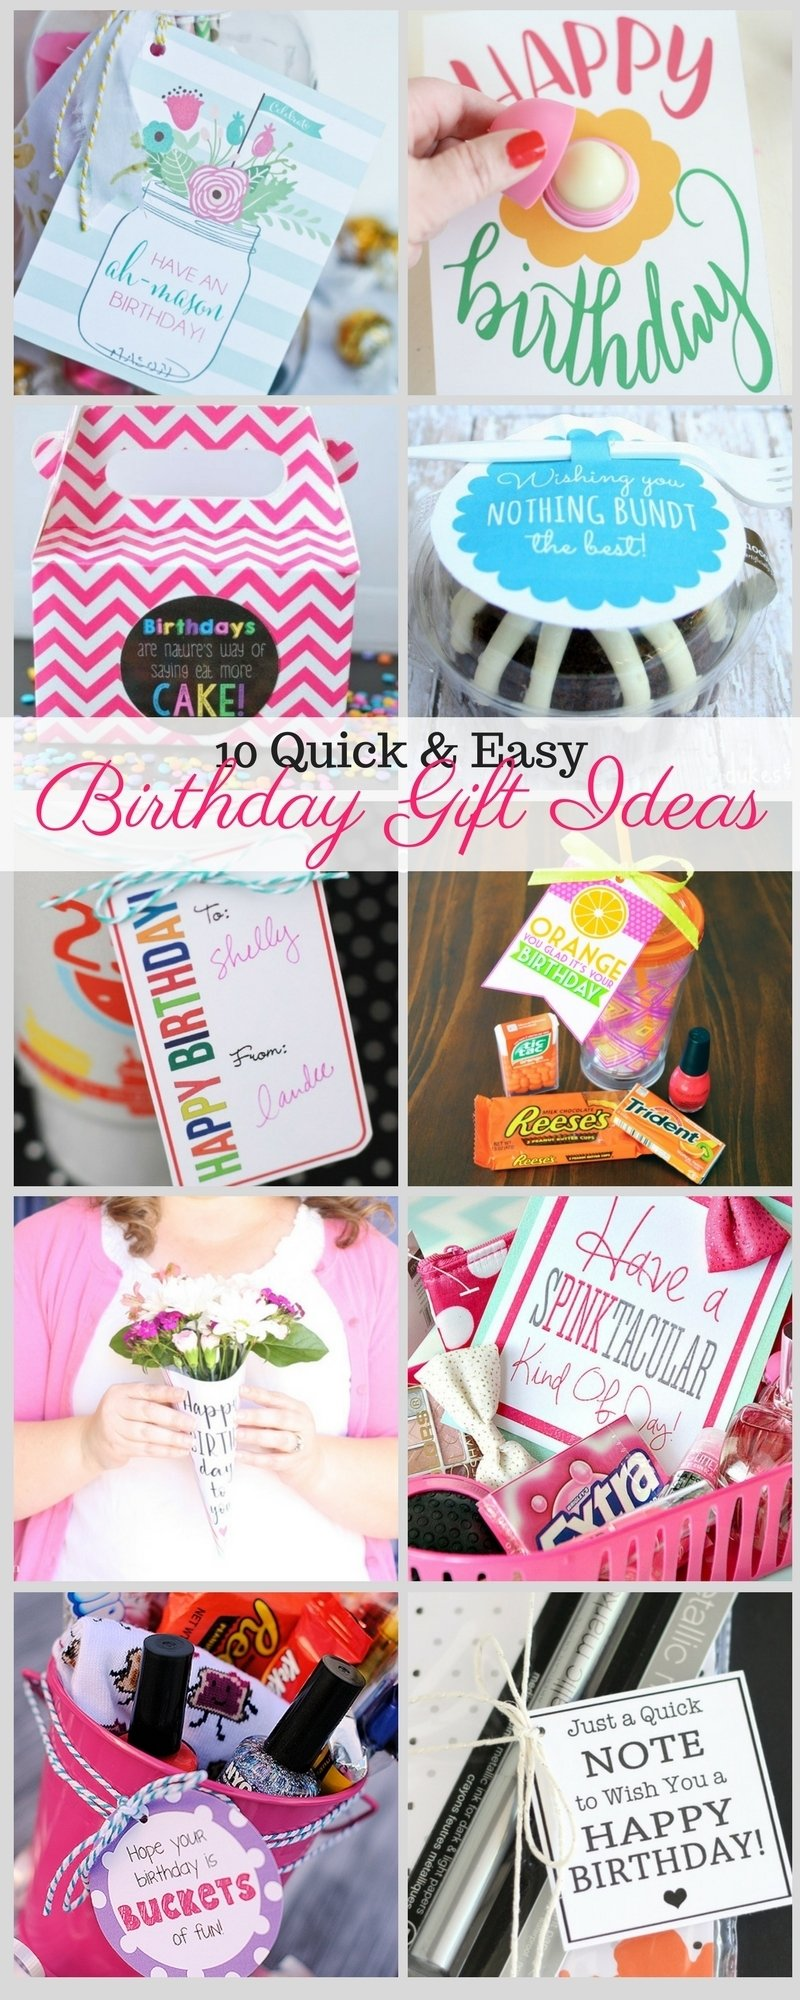 10 quick and easy birthday gift ideas - liz on call